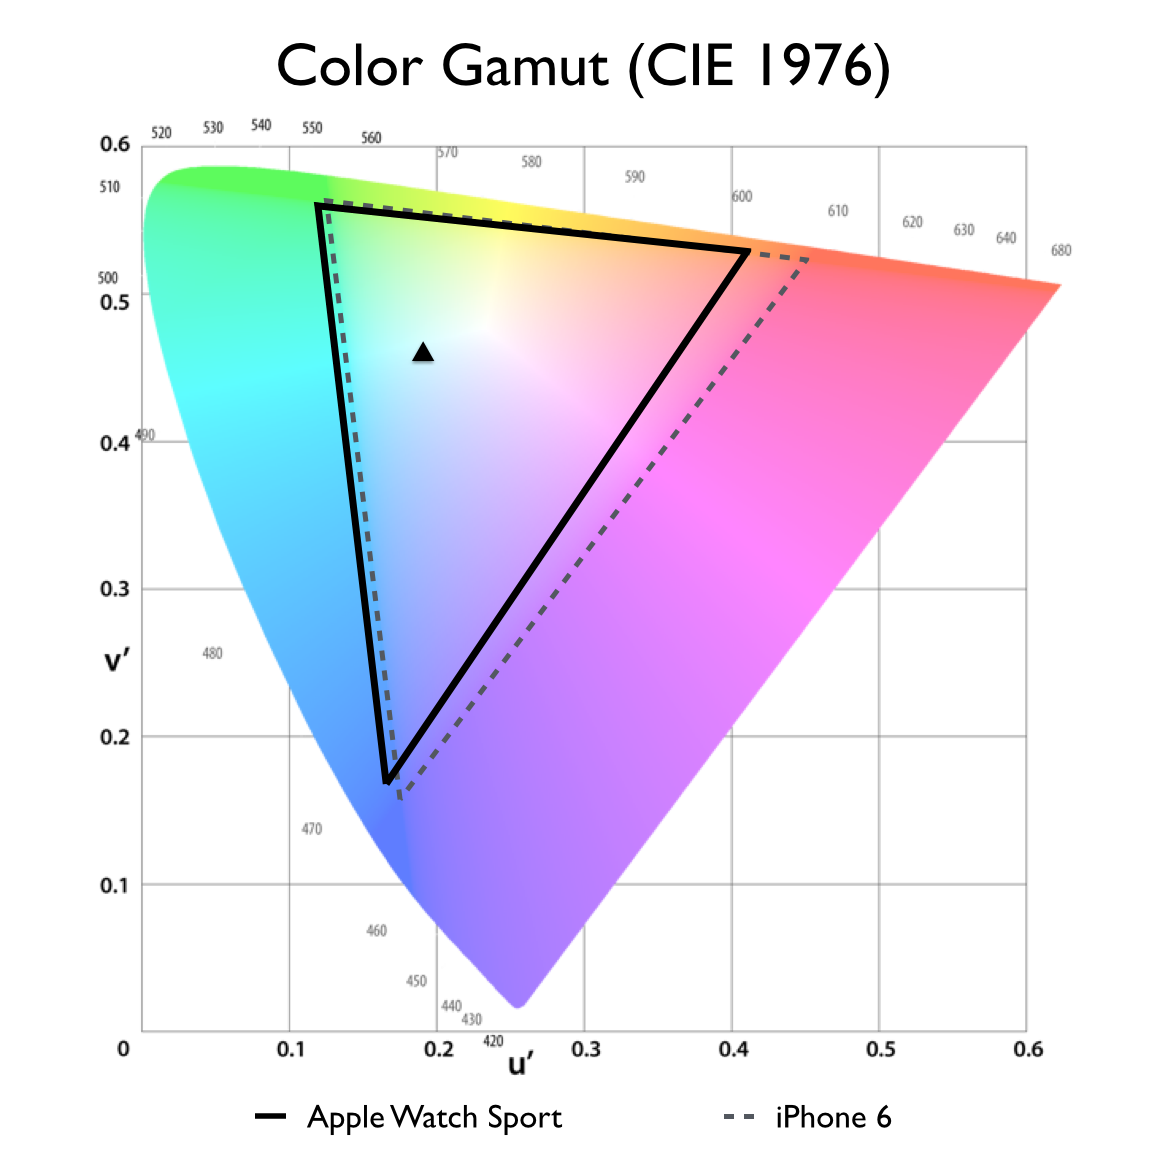 Apple Watch Sport color gamut. The watch we tested had a surprisingly narrow color gamut for an AMOLED display, covering just 82% of the LCD-based  iPhone 6's gamut. This may be due to a color management error since others have measured closer to full coverage.